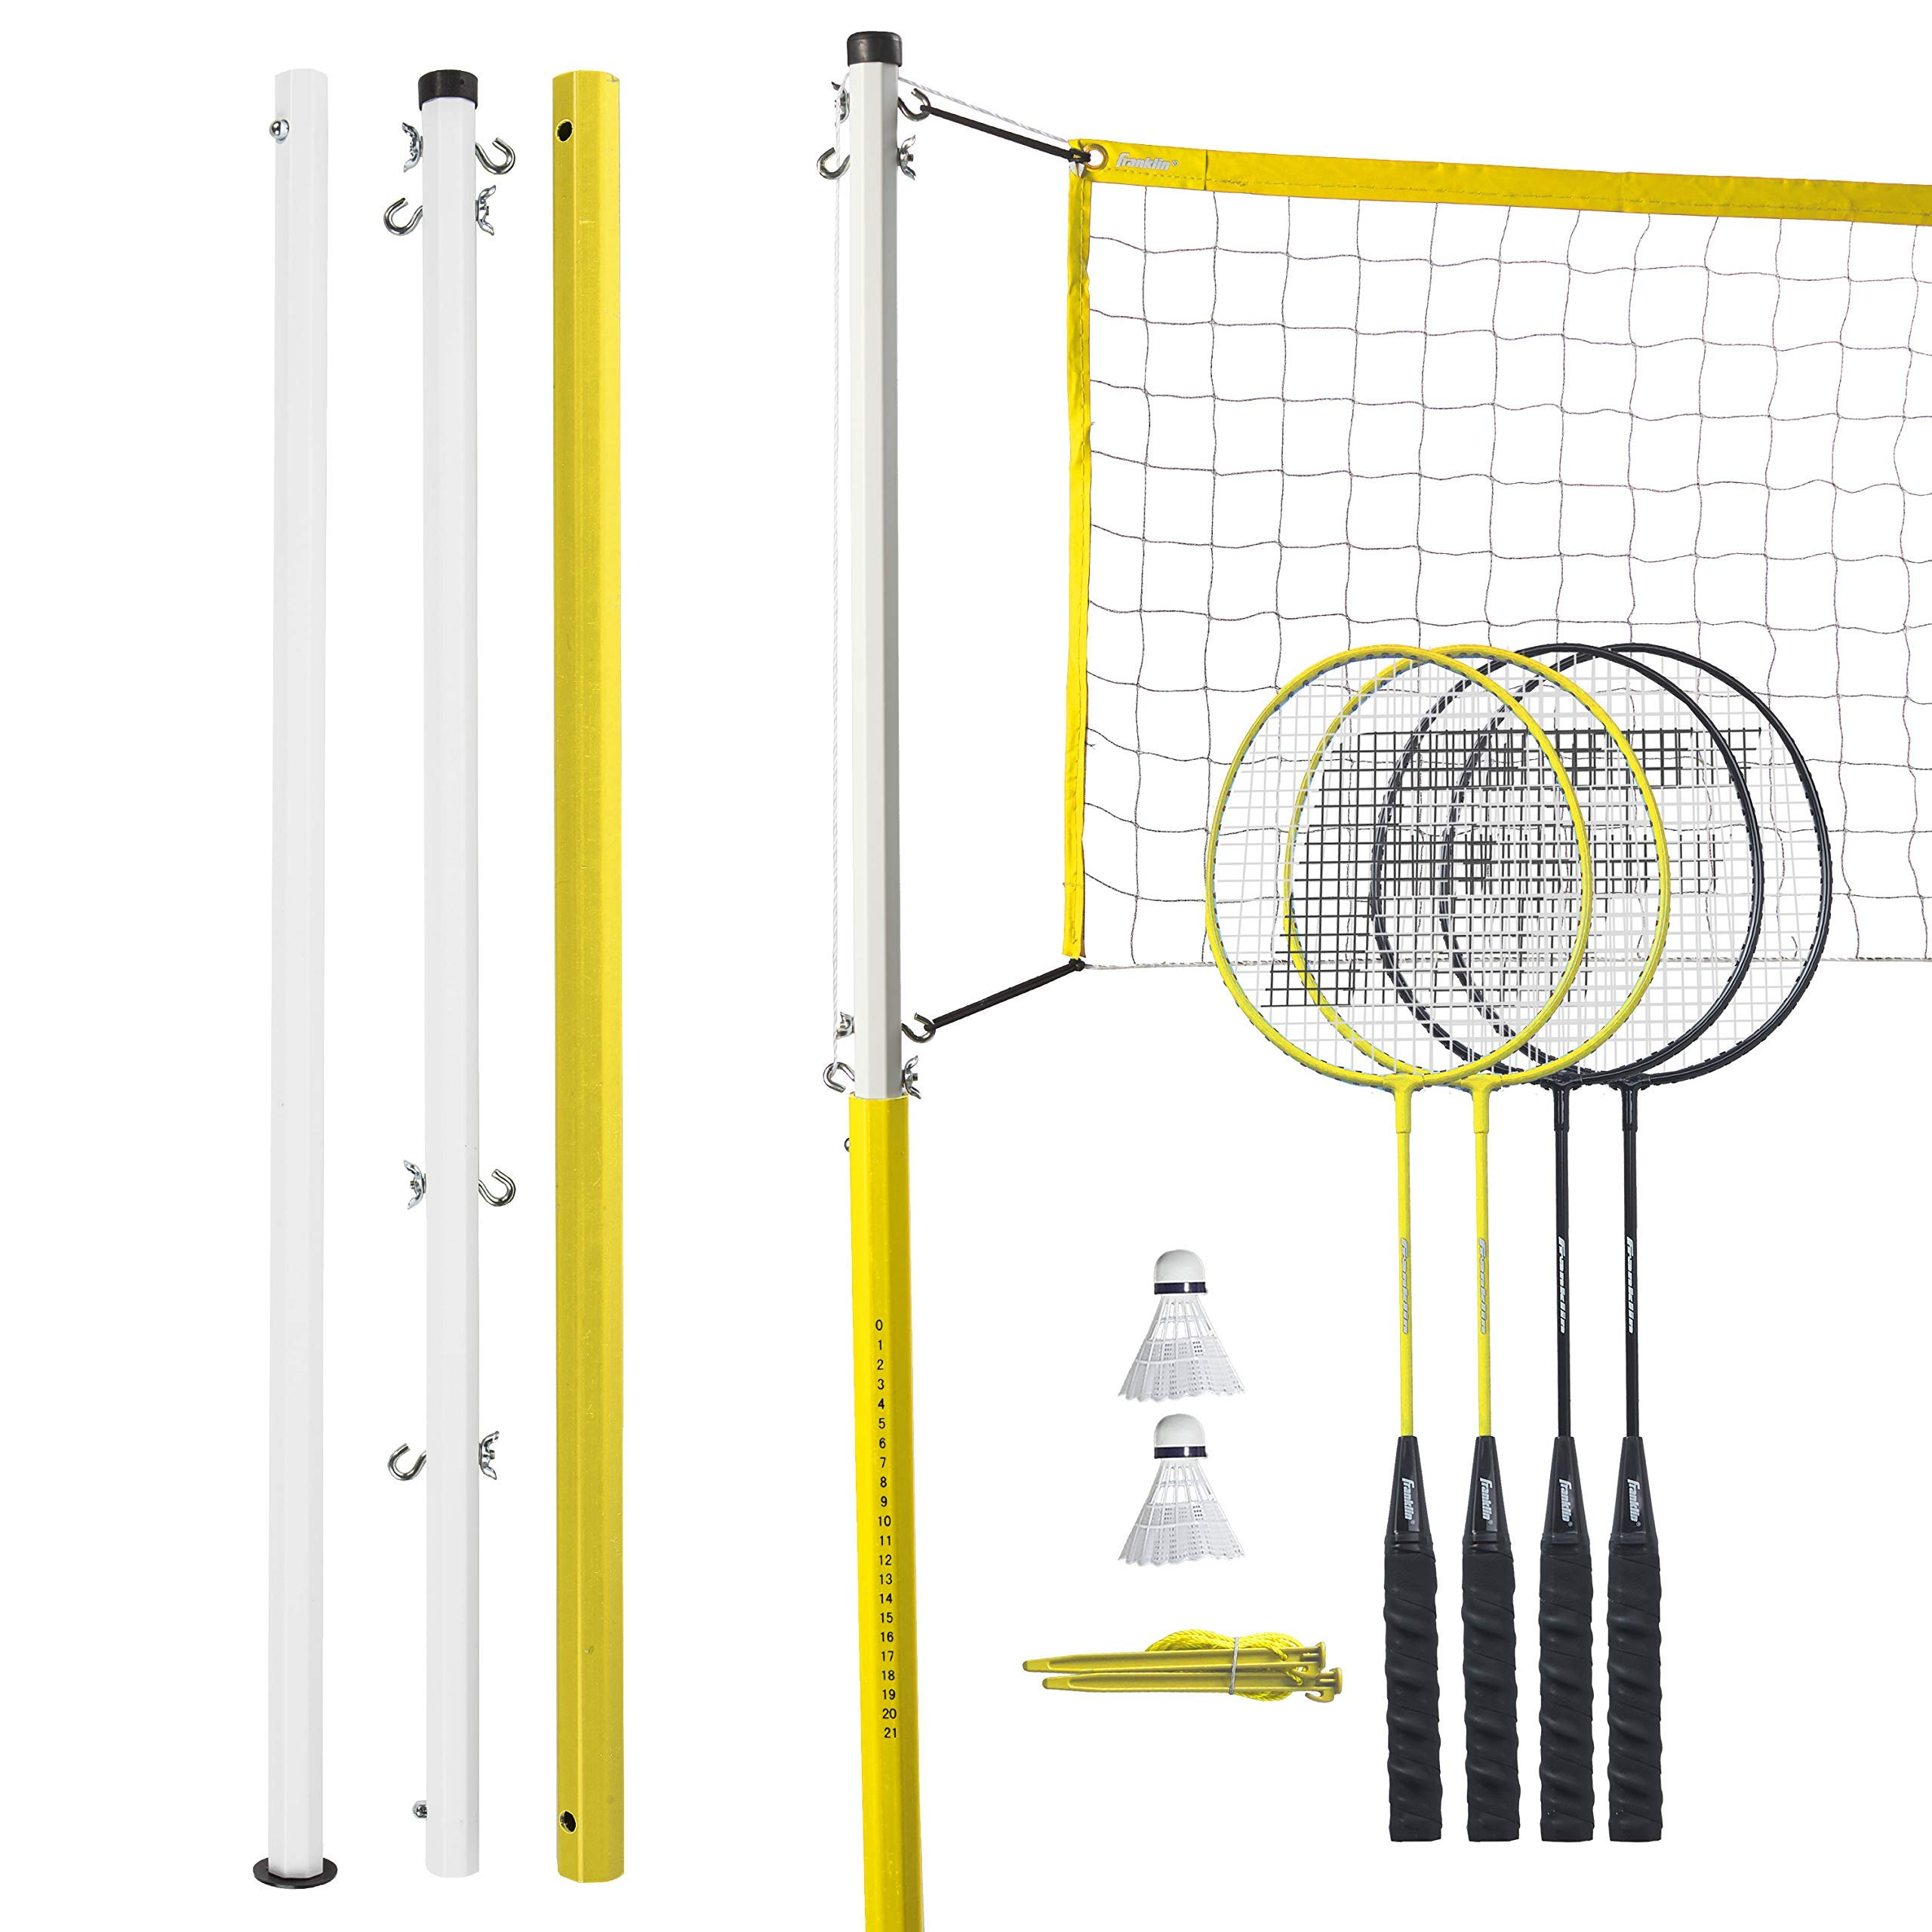 Franklin Sports Badminton Net Family Set - Includes 4 Steel Rackets, 2 Birdies, Adjustable Net and Stakes - Backyard or Beach Badminton Set - Easy Net Setup (Renewed)